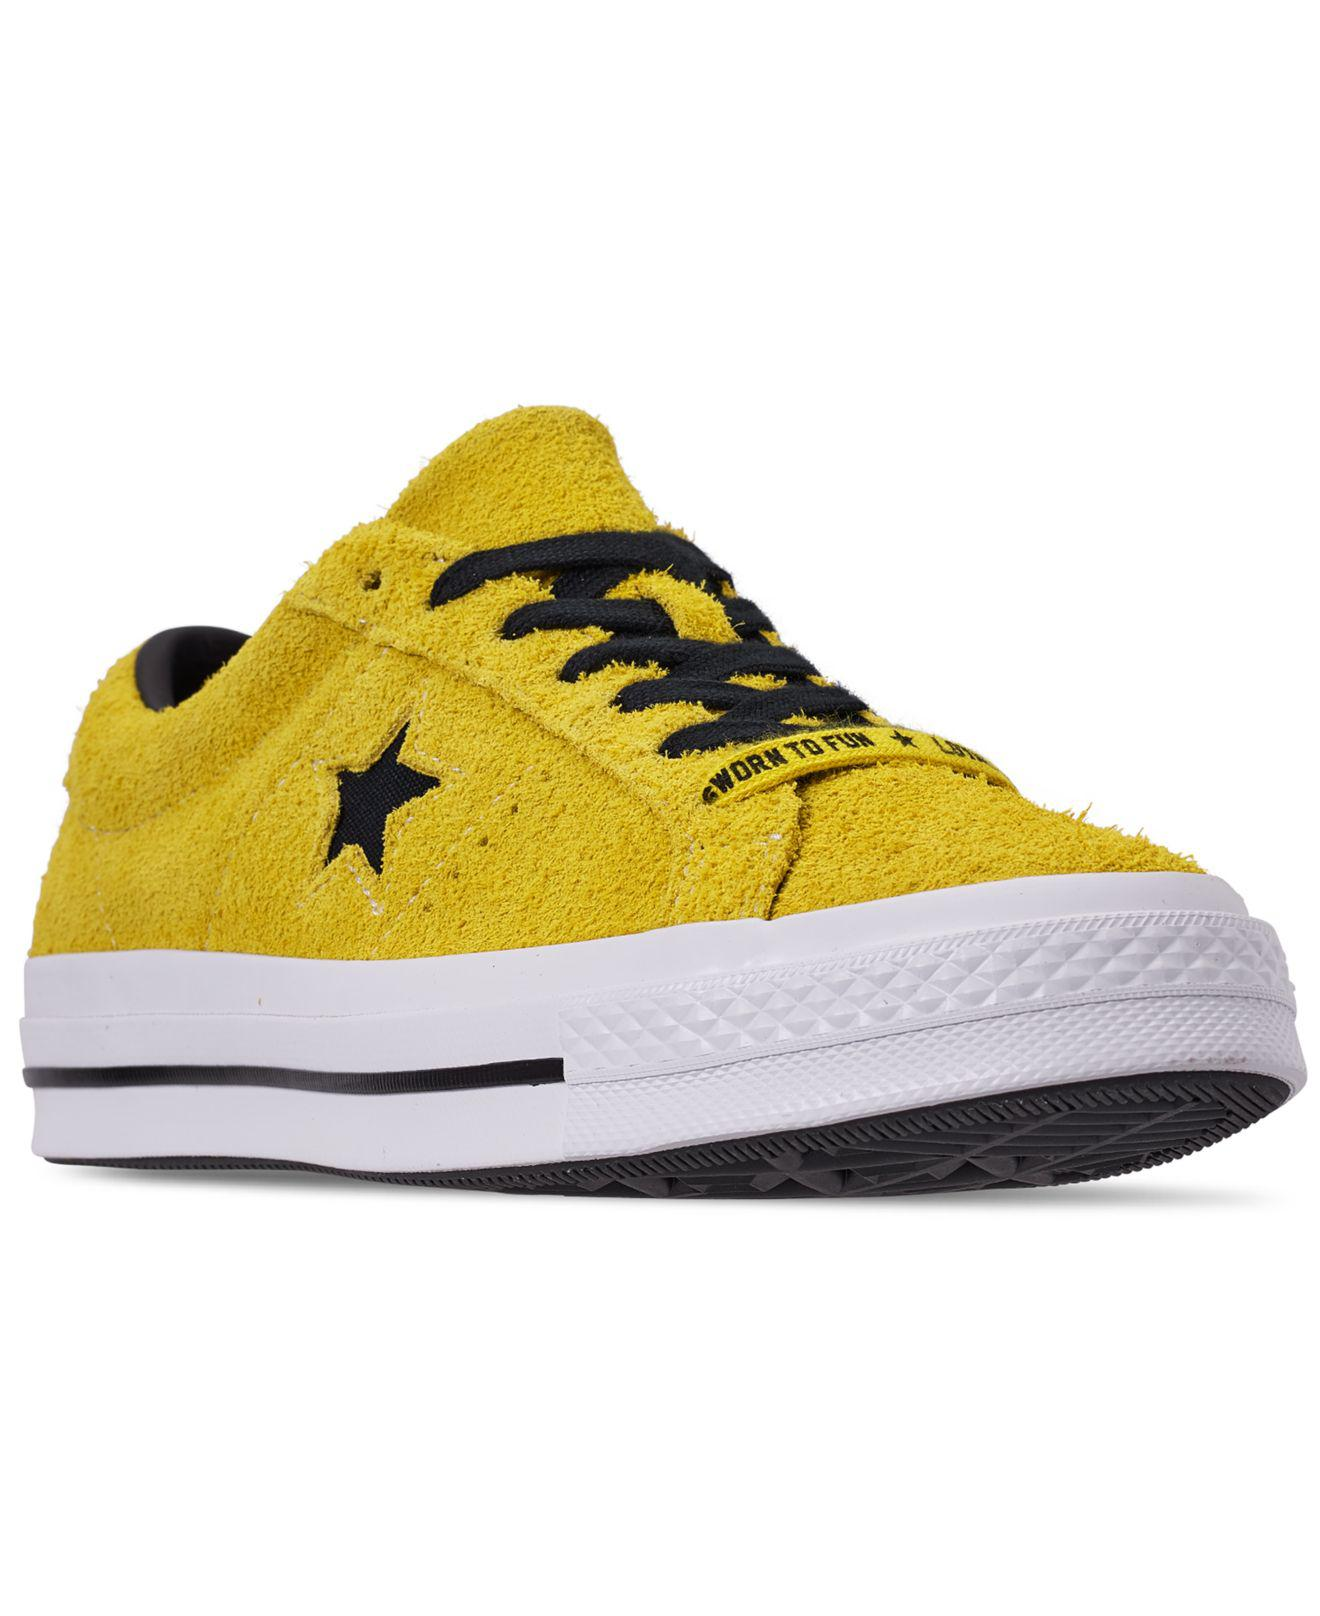 fad067cc2ffae6 Lyst - Converse One Star in Yellow for Men - Save 51%